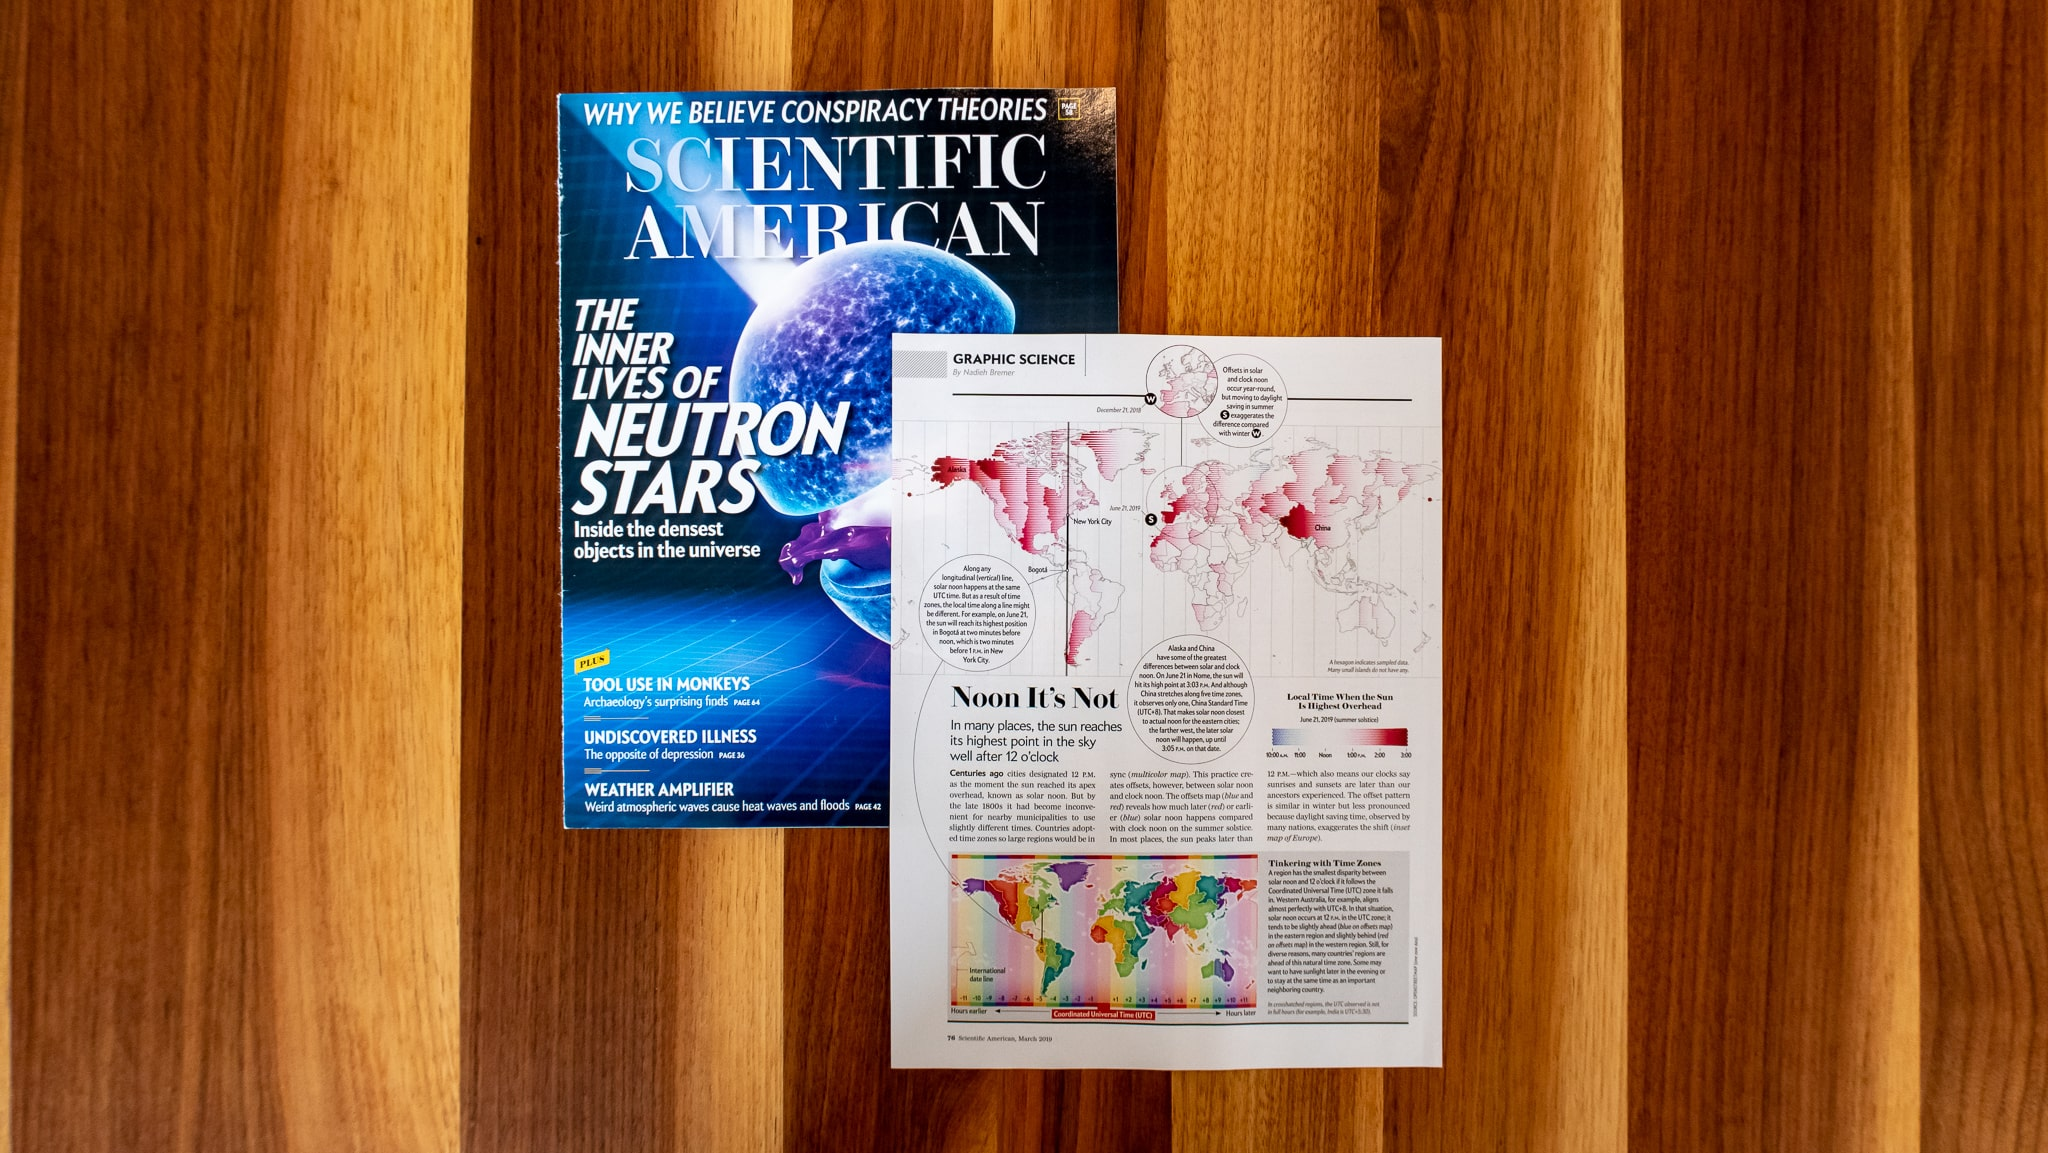 The Graphic Science page together with the rest of the March 2019 Scientific American issue